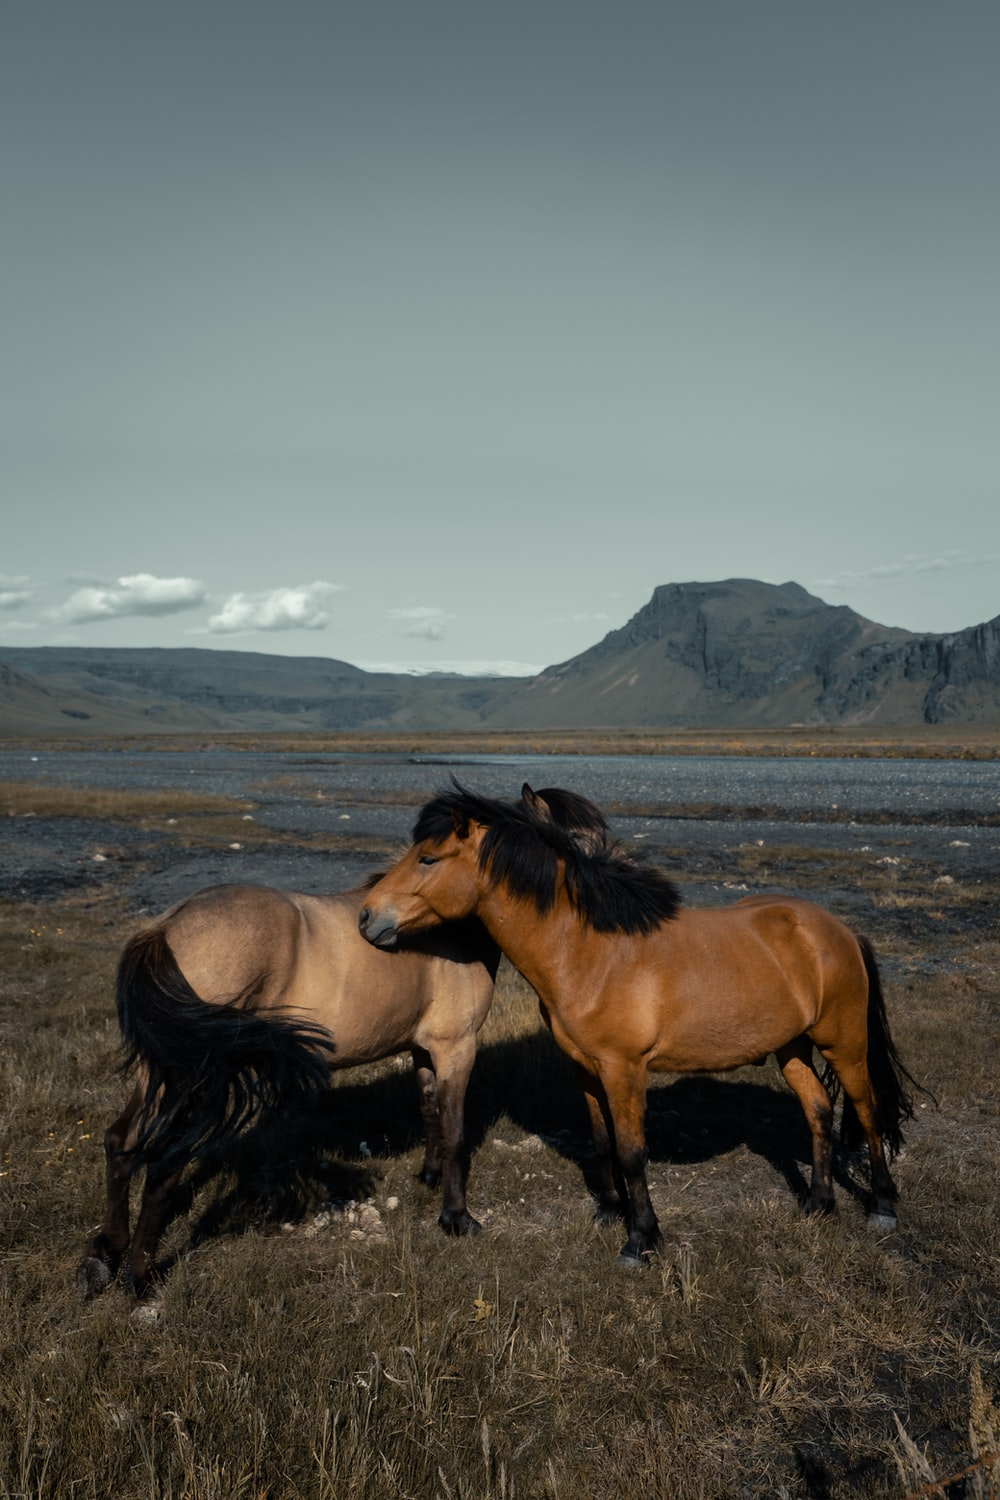 two brown horses on grass field